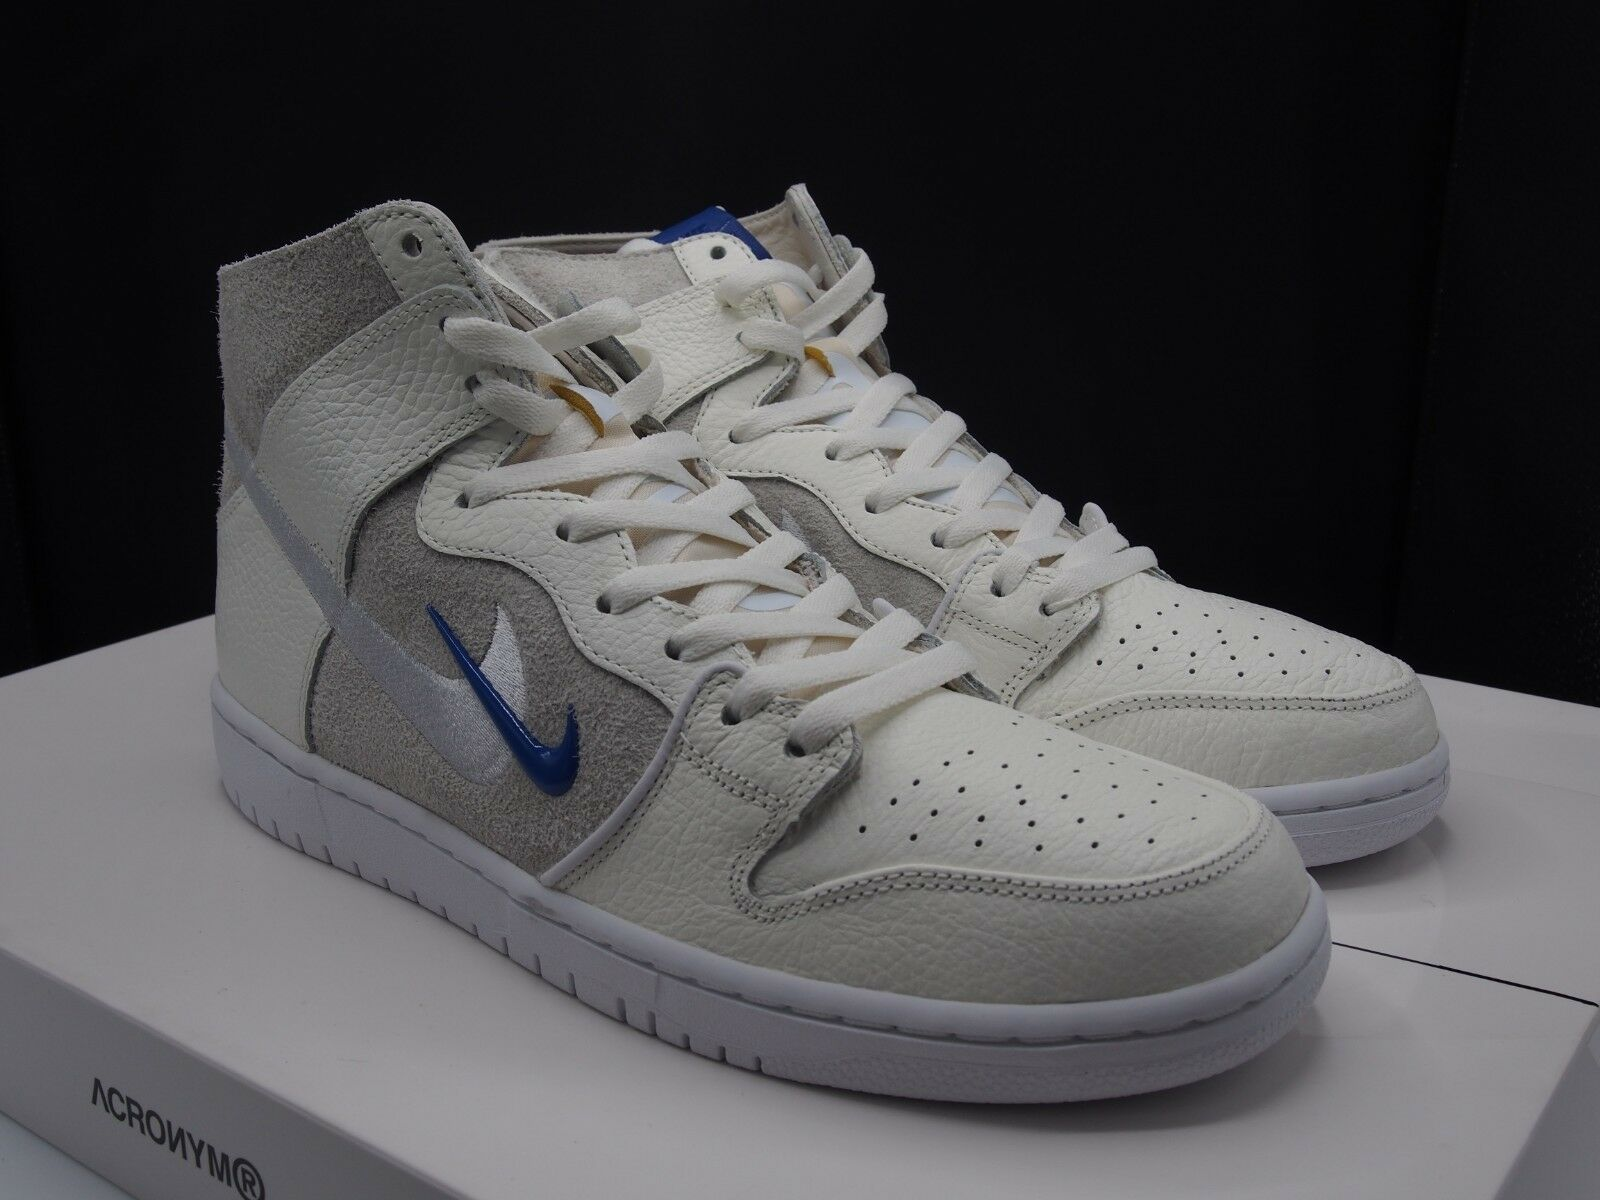 5350105df69 Nike SB Zoom Dunk High Pro QS Soulland Fri.day Deconstructed Ah9613 ...